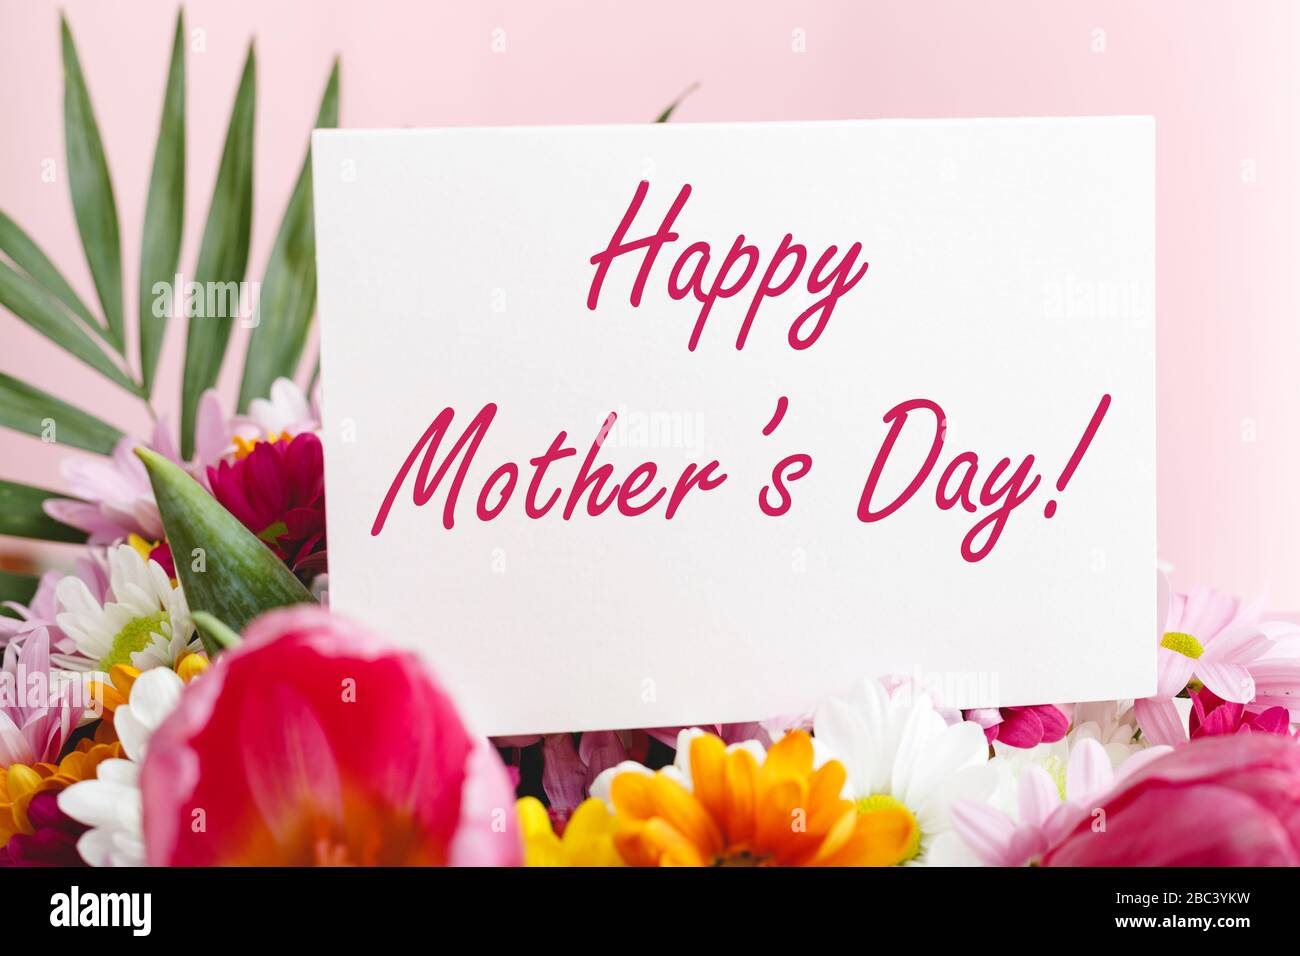 Happy Mothers Day Text On Gift Card In Flower Bouquet On Pink Background Greeting Card For Mom Flower Delivery Congratulations Card In Flowers For Stock Photo Alamy